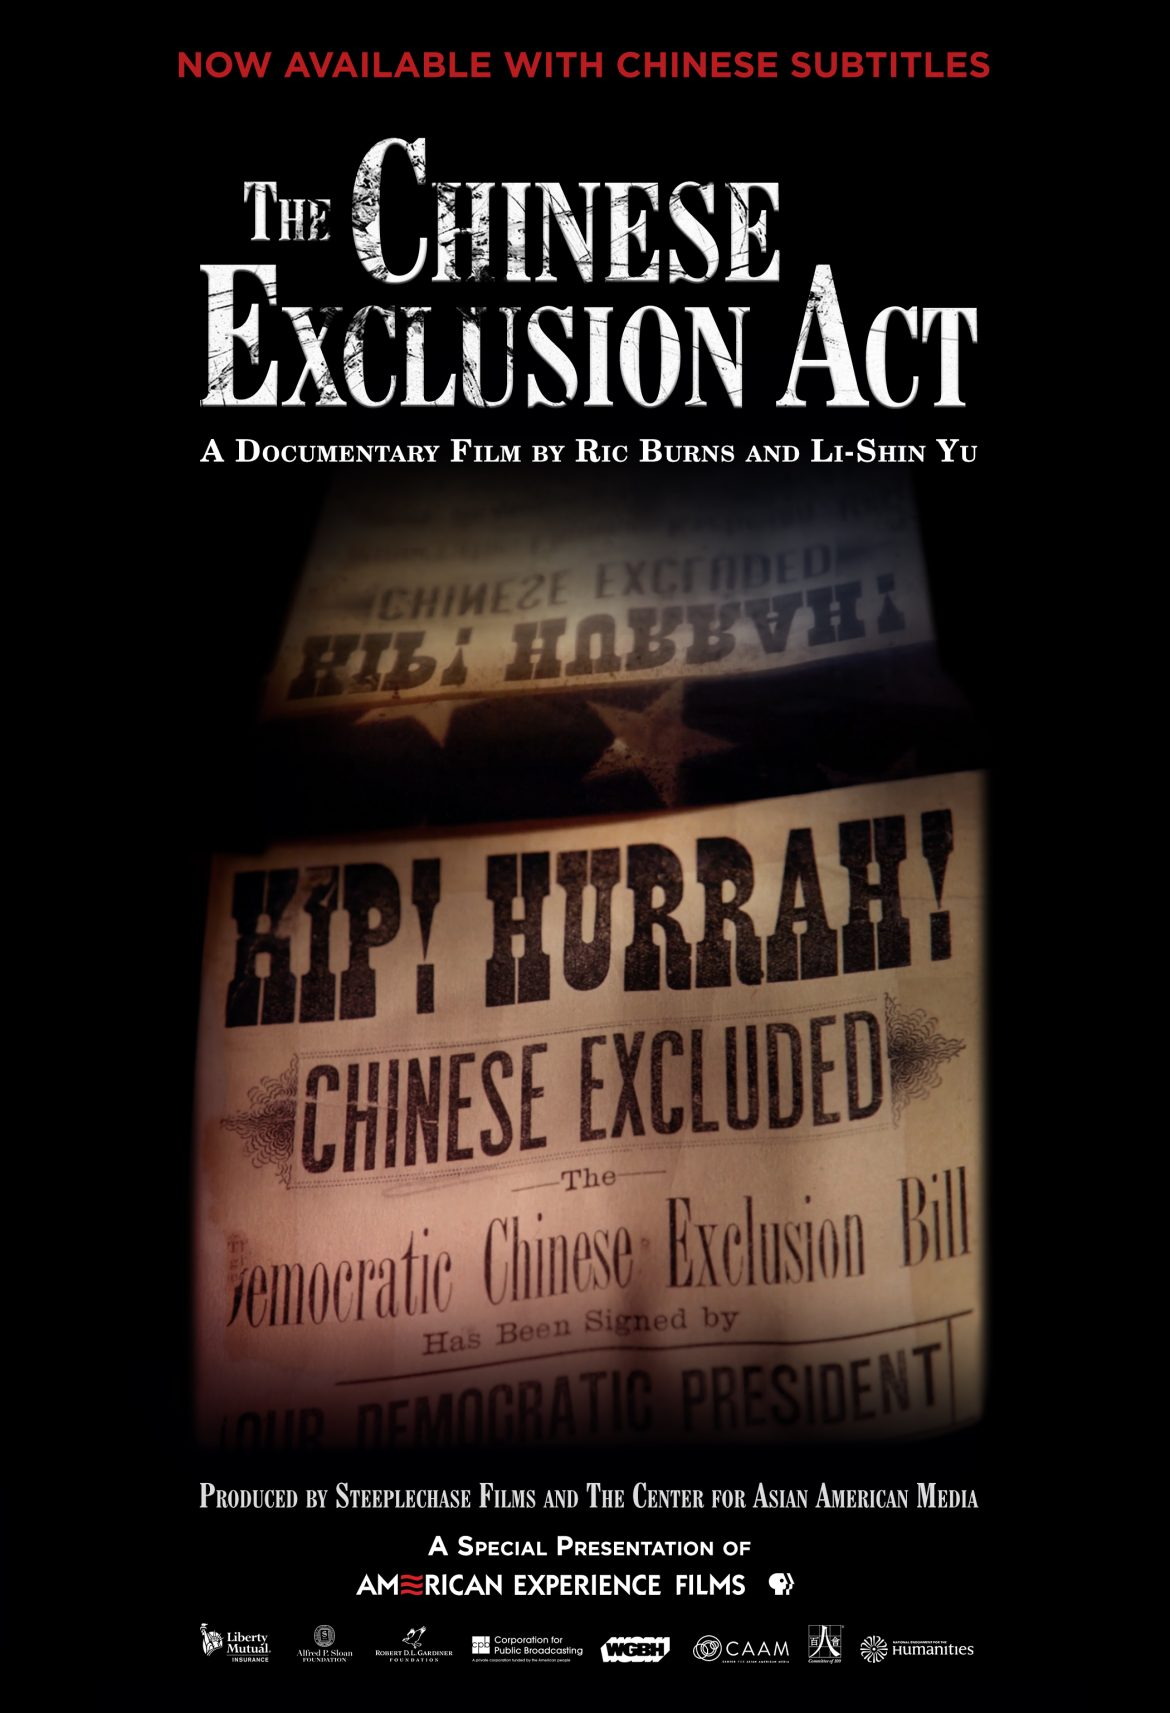 The Chinese Exclusion Act Dvd Now Available With Chinese